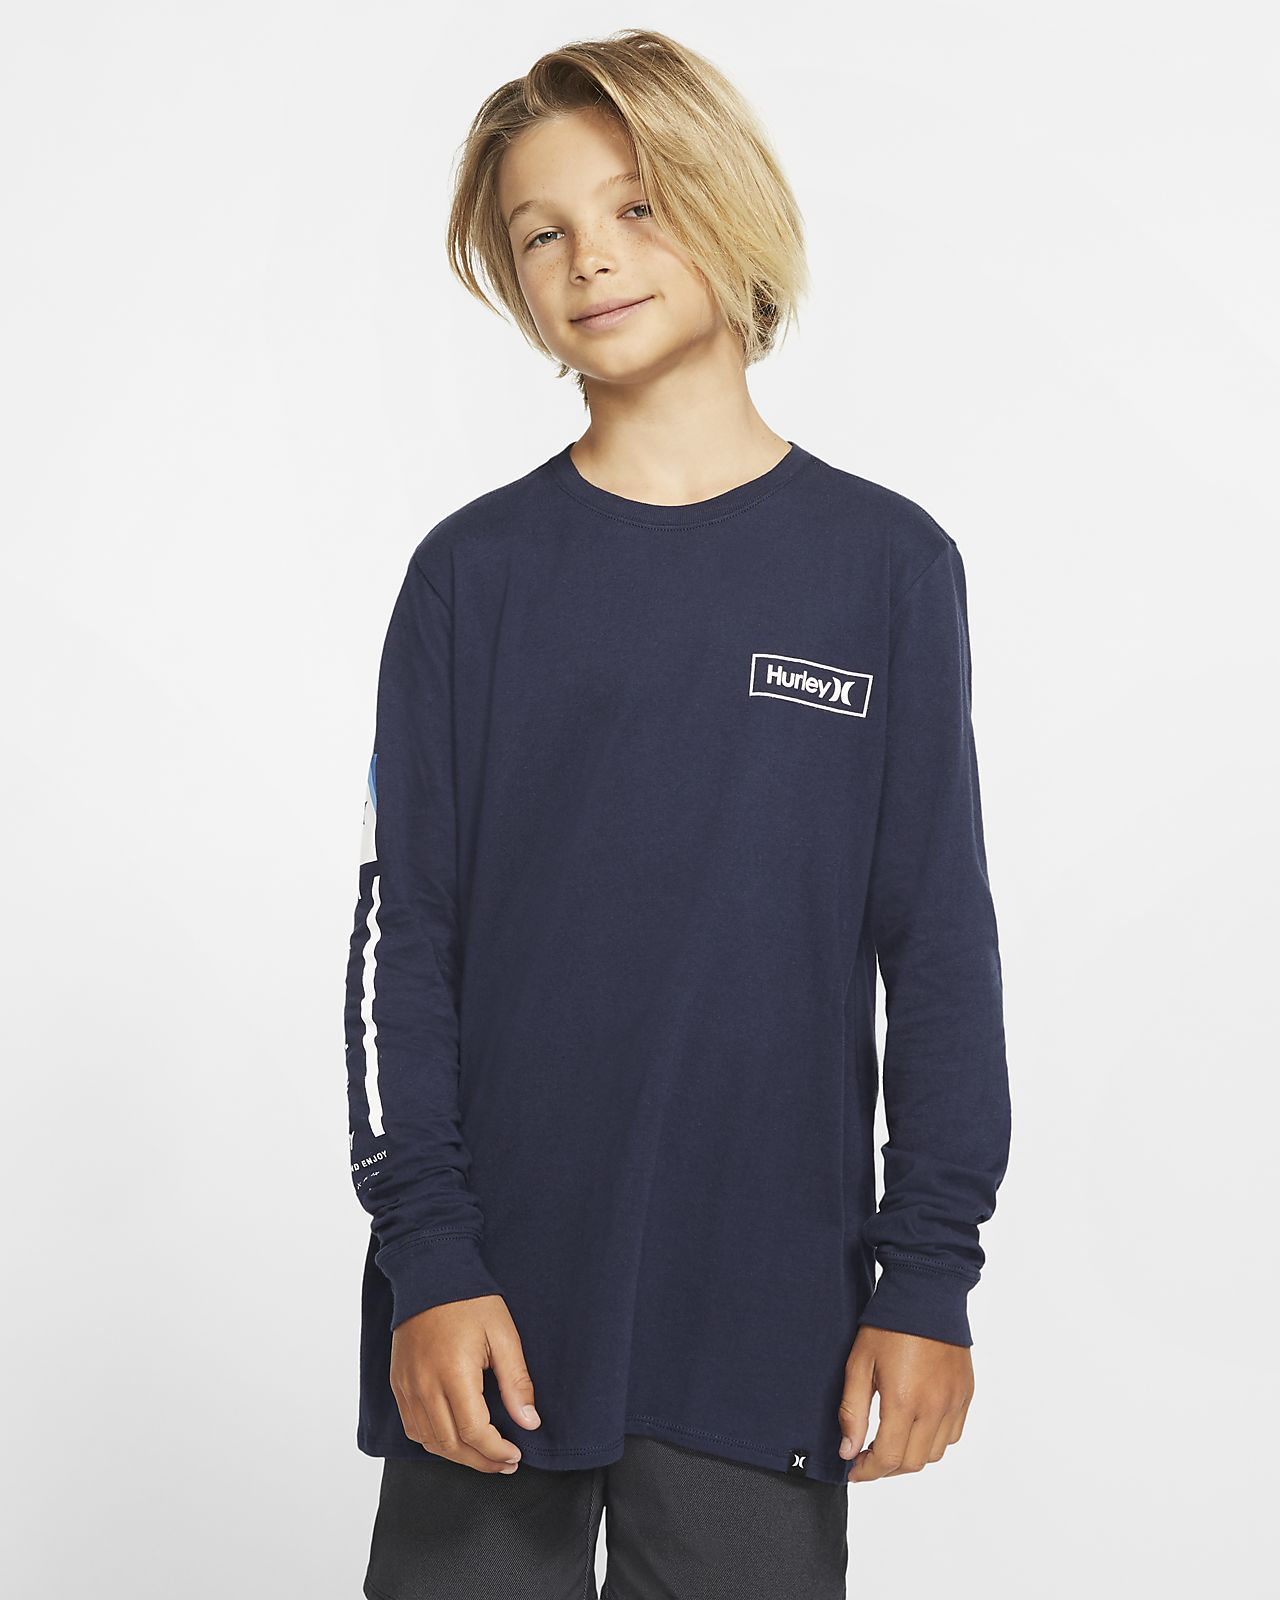 Hurley Premium Right Arm Langarm-Premium-Fit-T-Shirt für Jungen